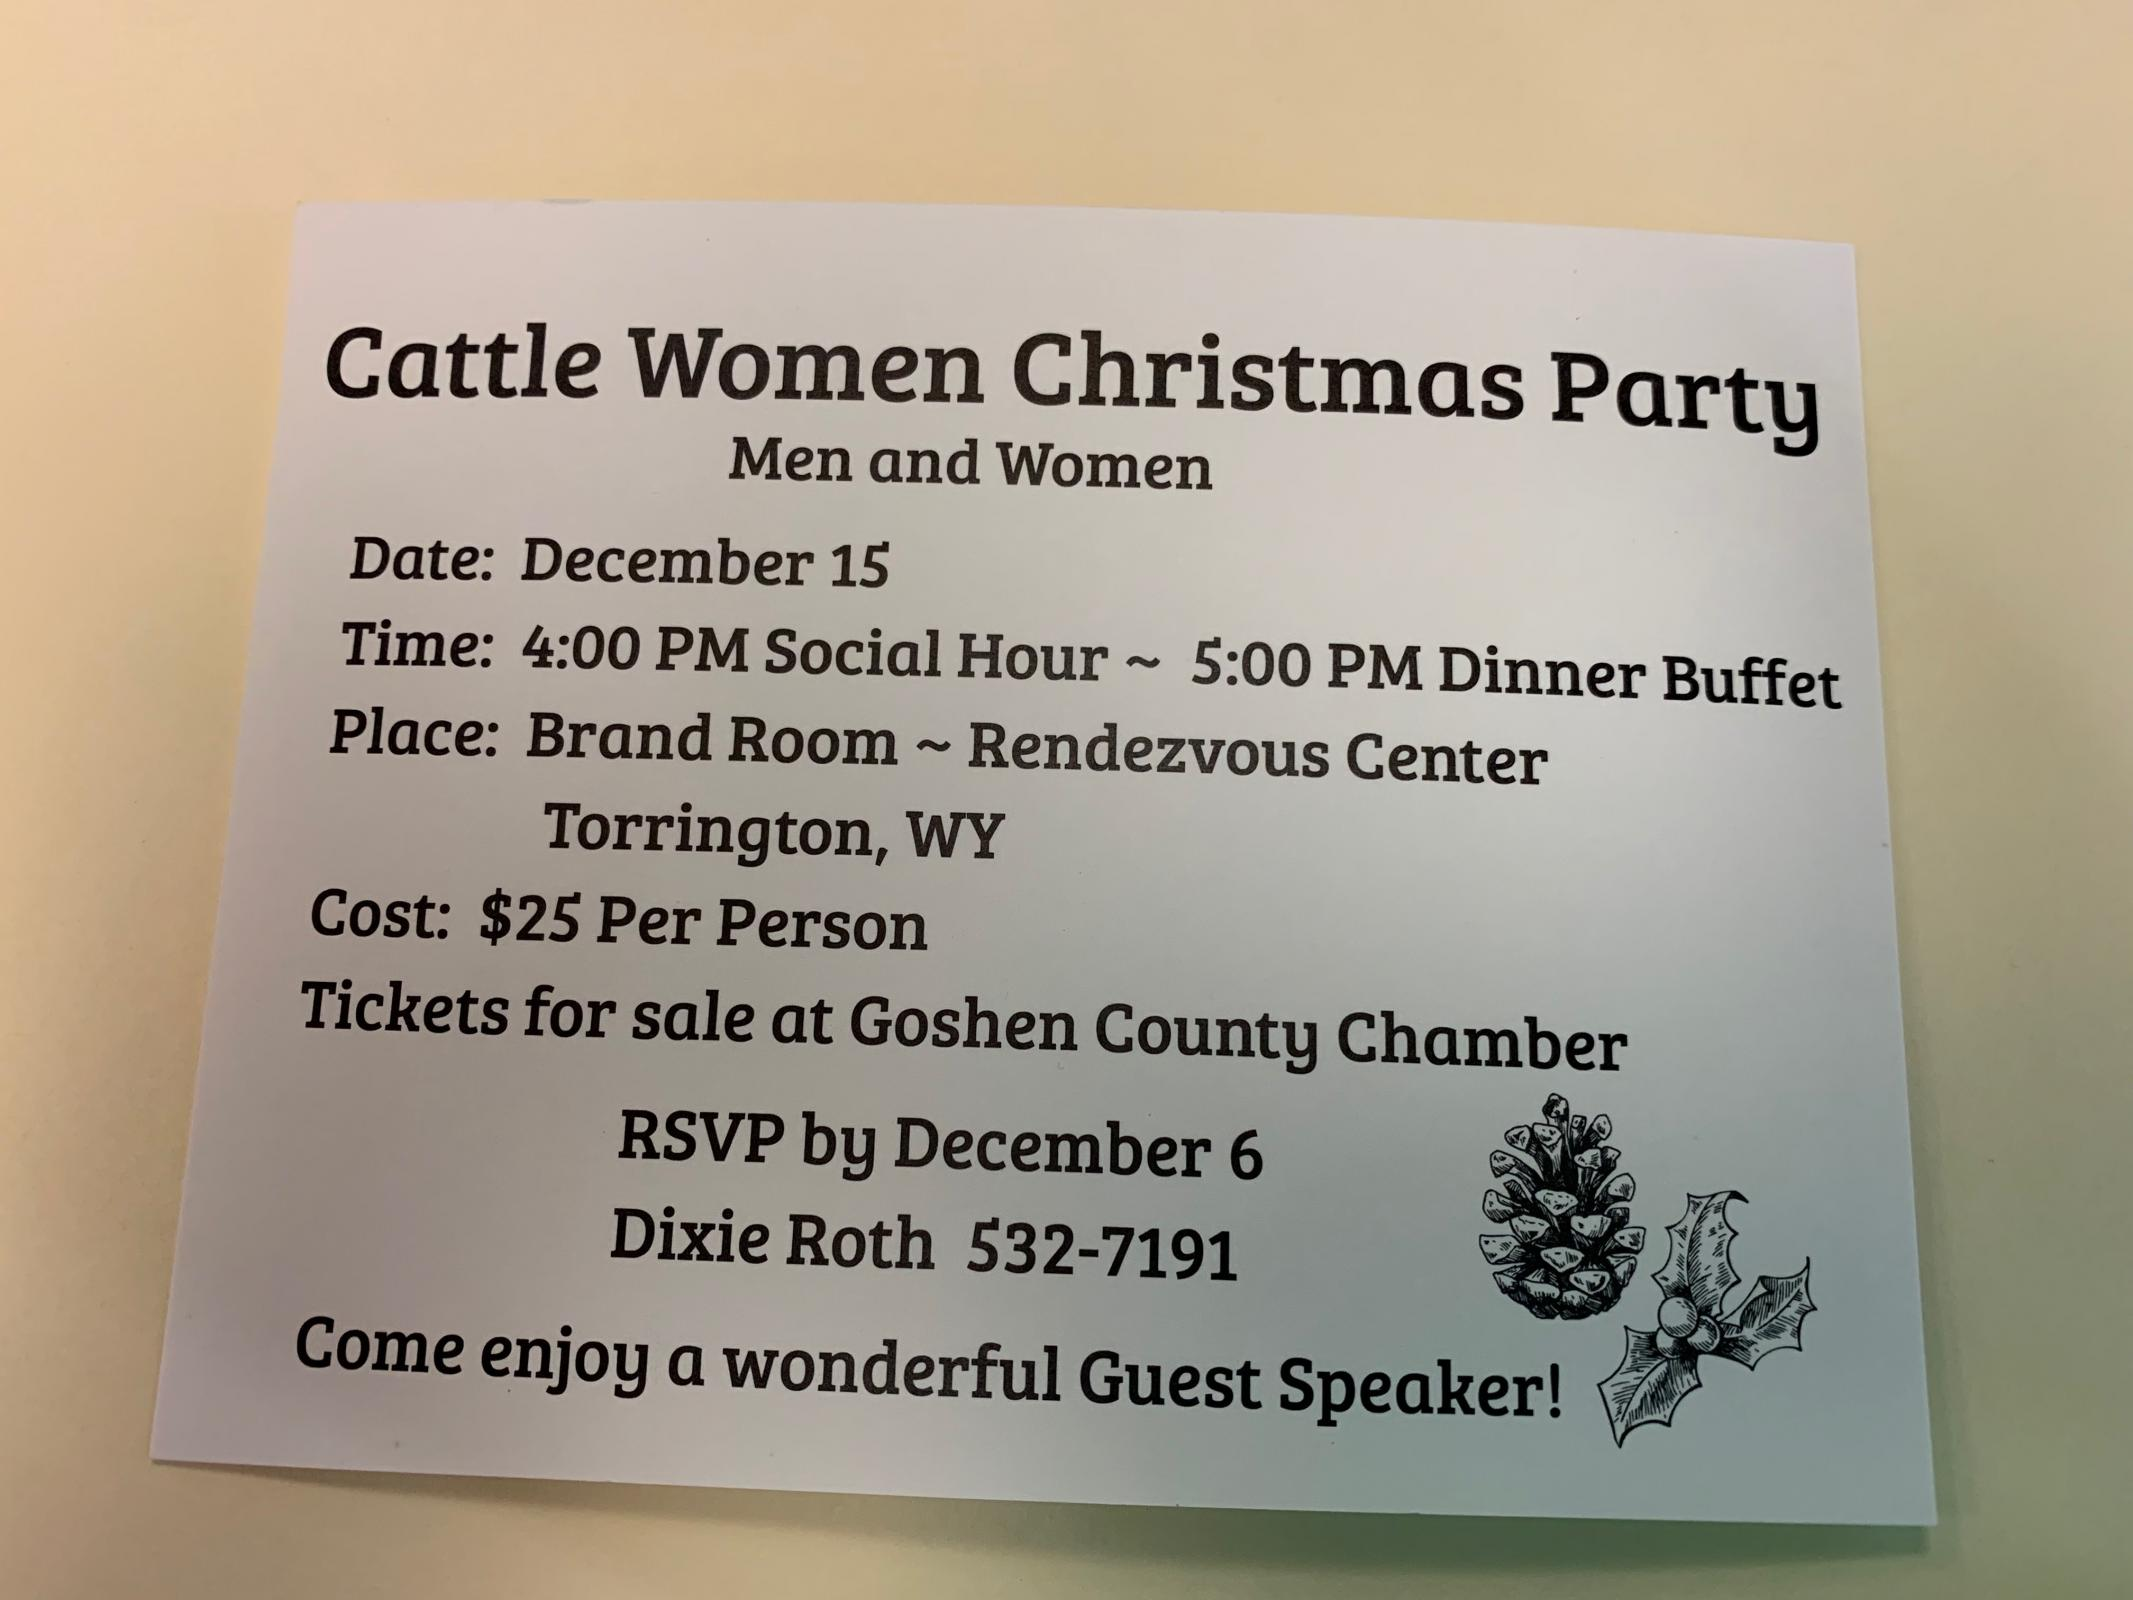 Cattle Women Christmas Party Photo